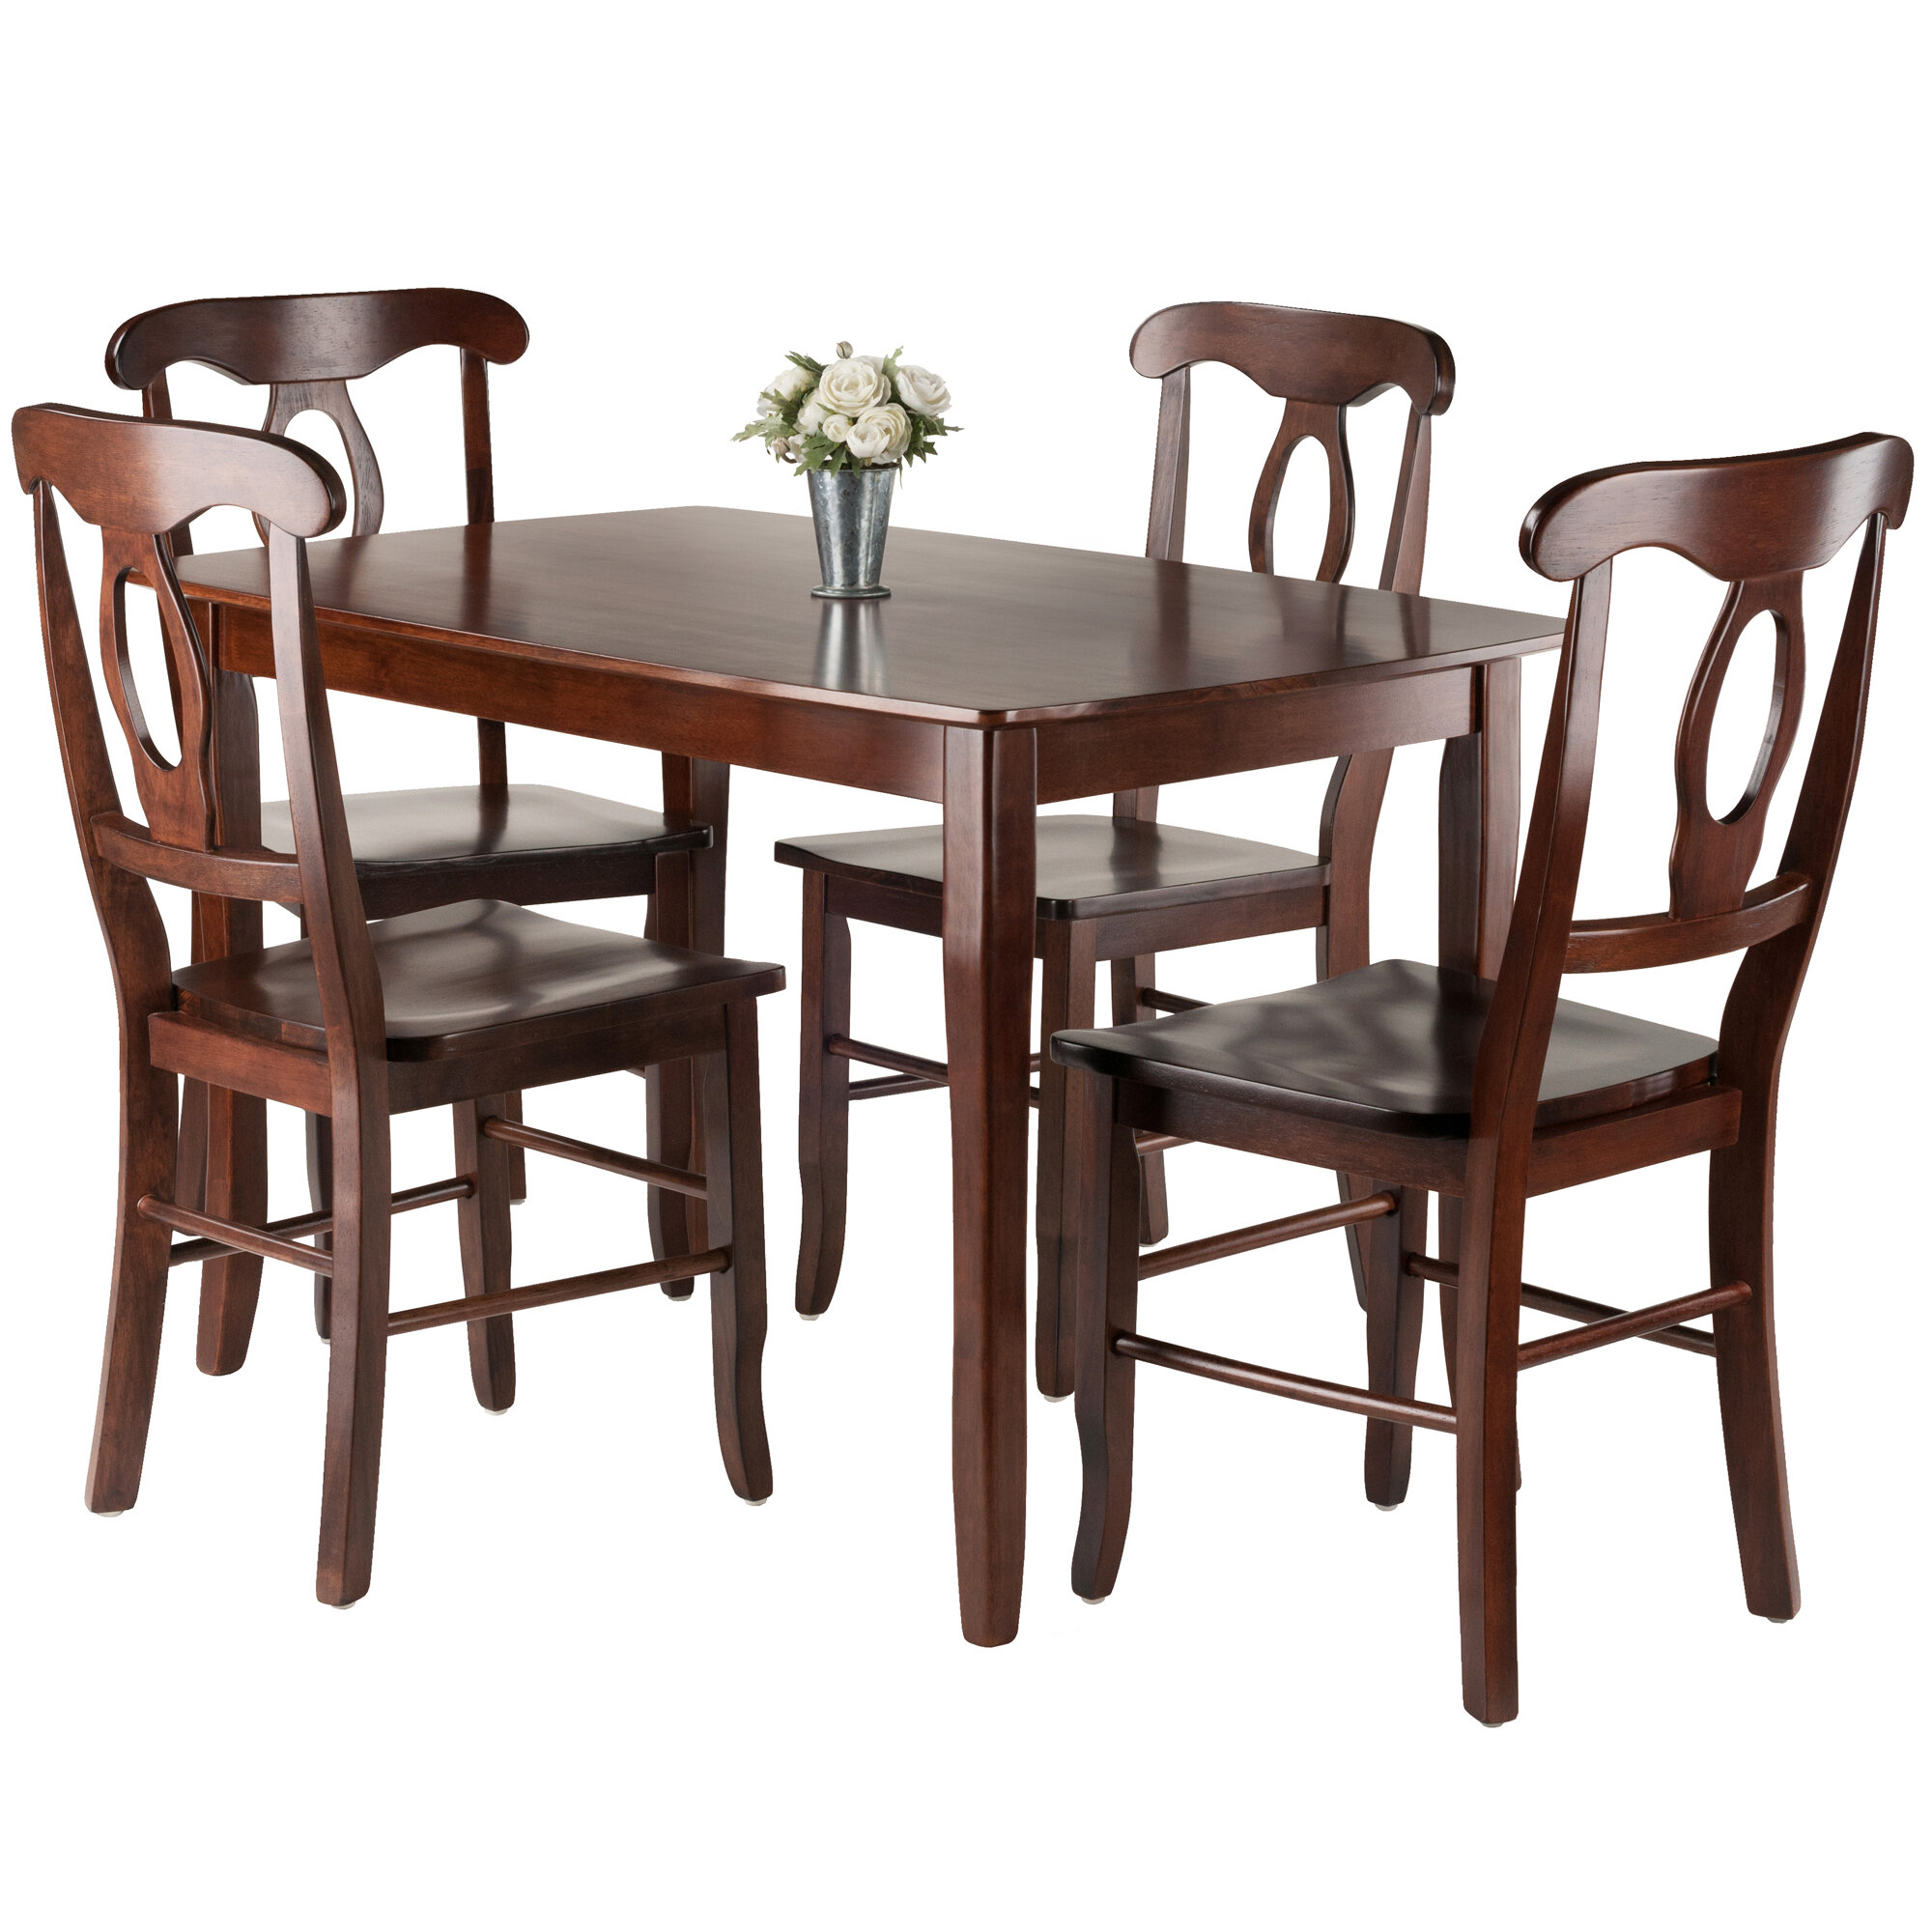 Red Barrel Studio Fetter 5 Piece Solid Wood Dining Set | Wayfair